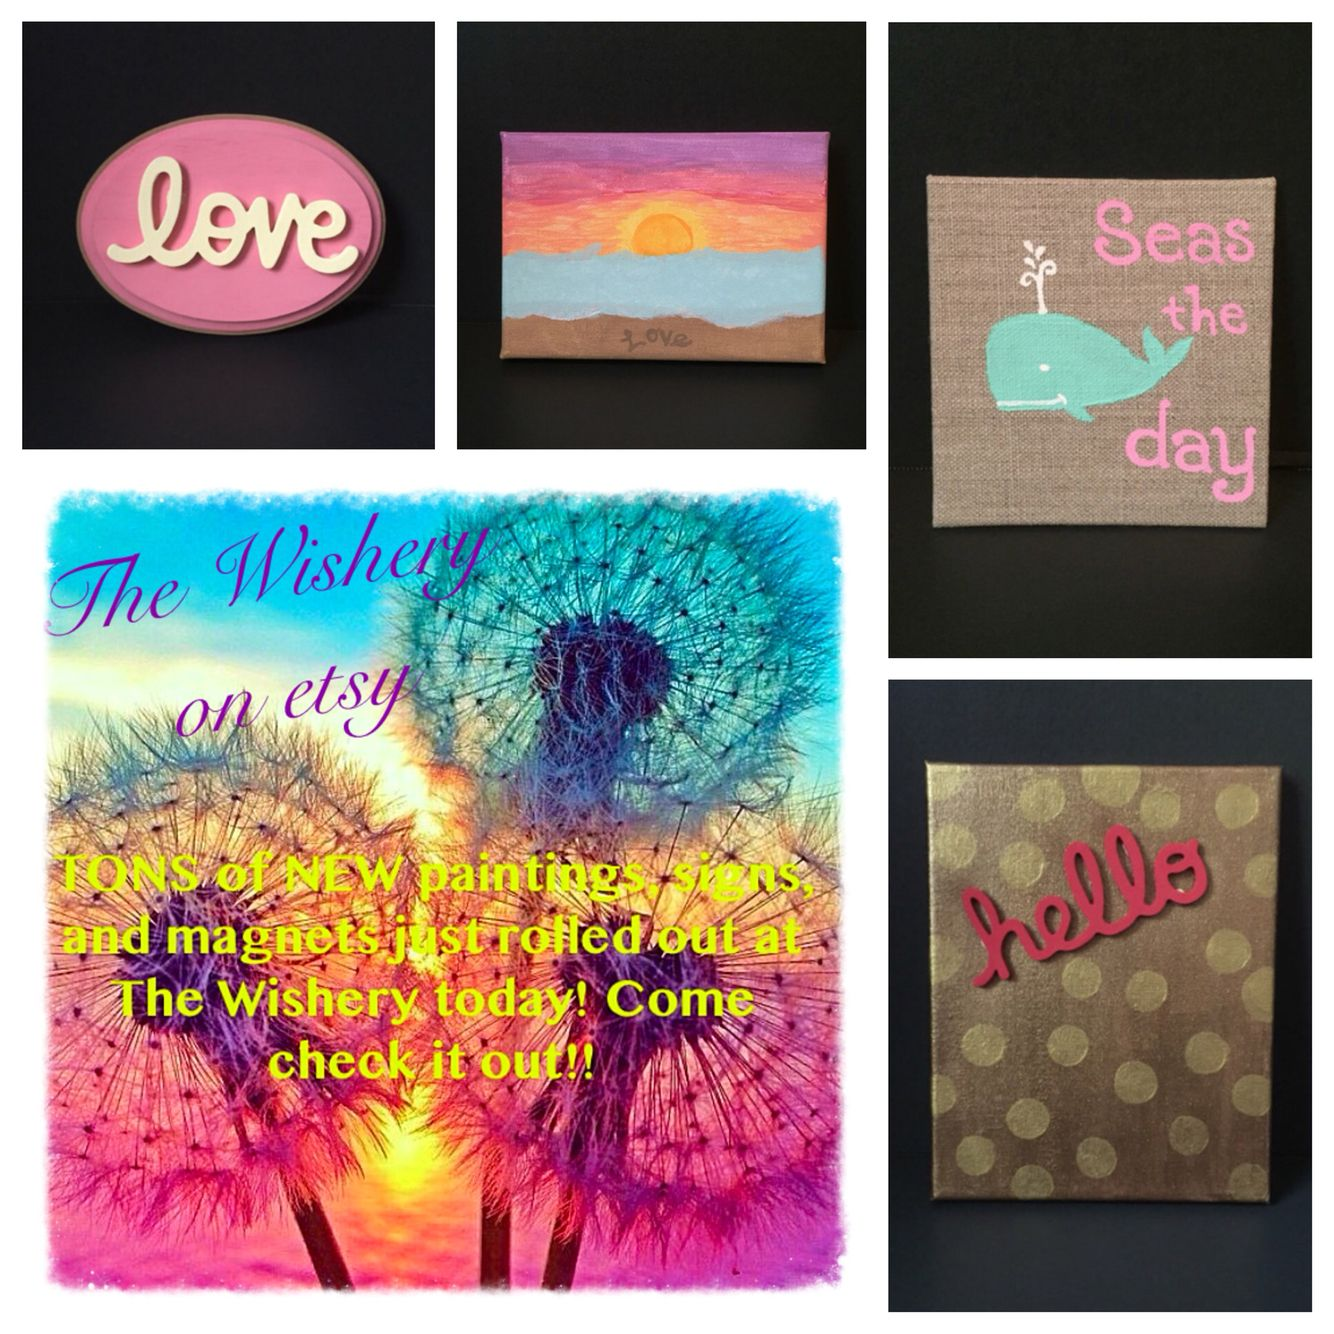 Www Etsy Com Shop Thewishery Come Check Out All Of The New Paintings Signs And Magnets At The Wishery Tons Of New Items Ets Painting Love Art Crafts